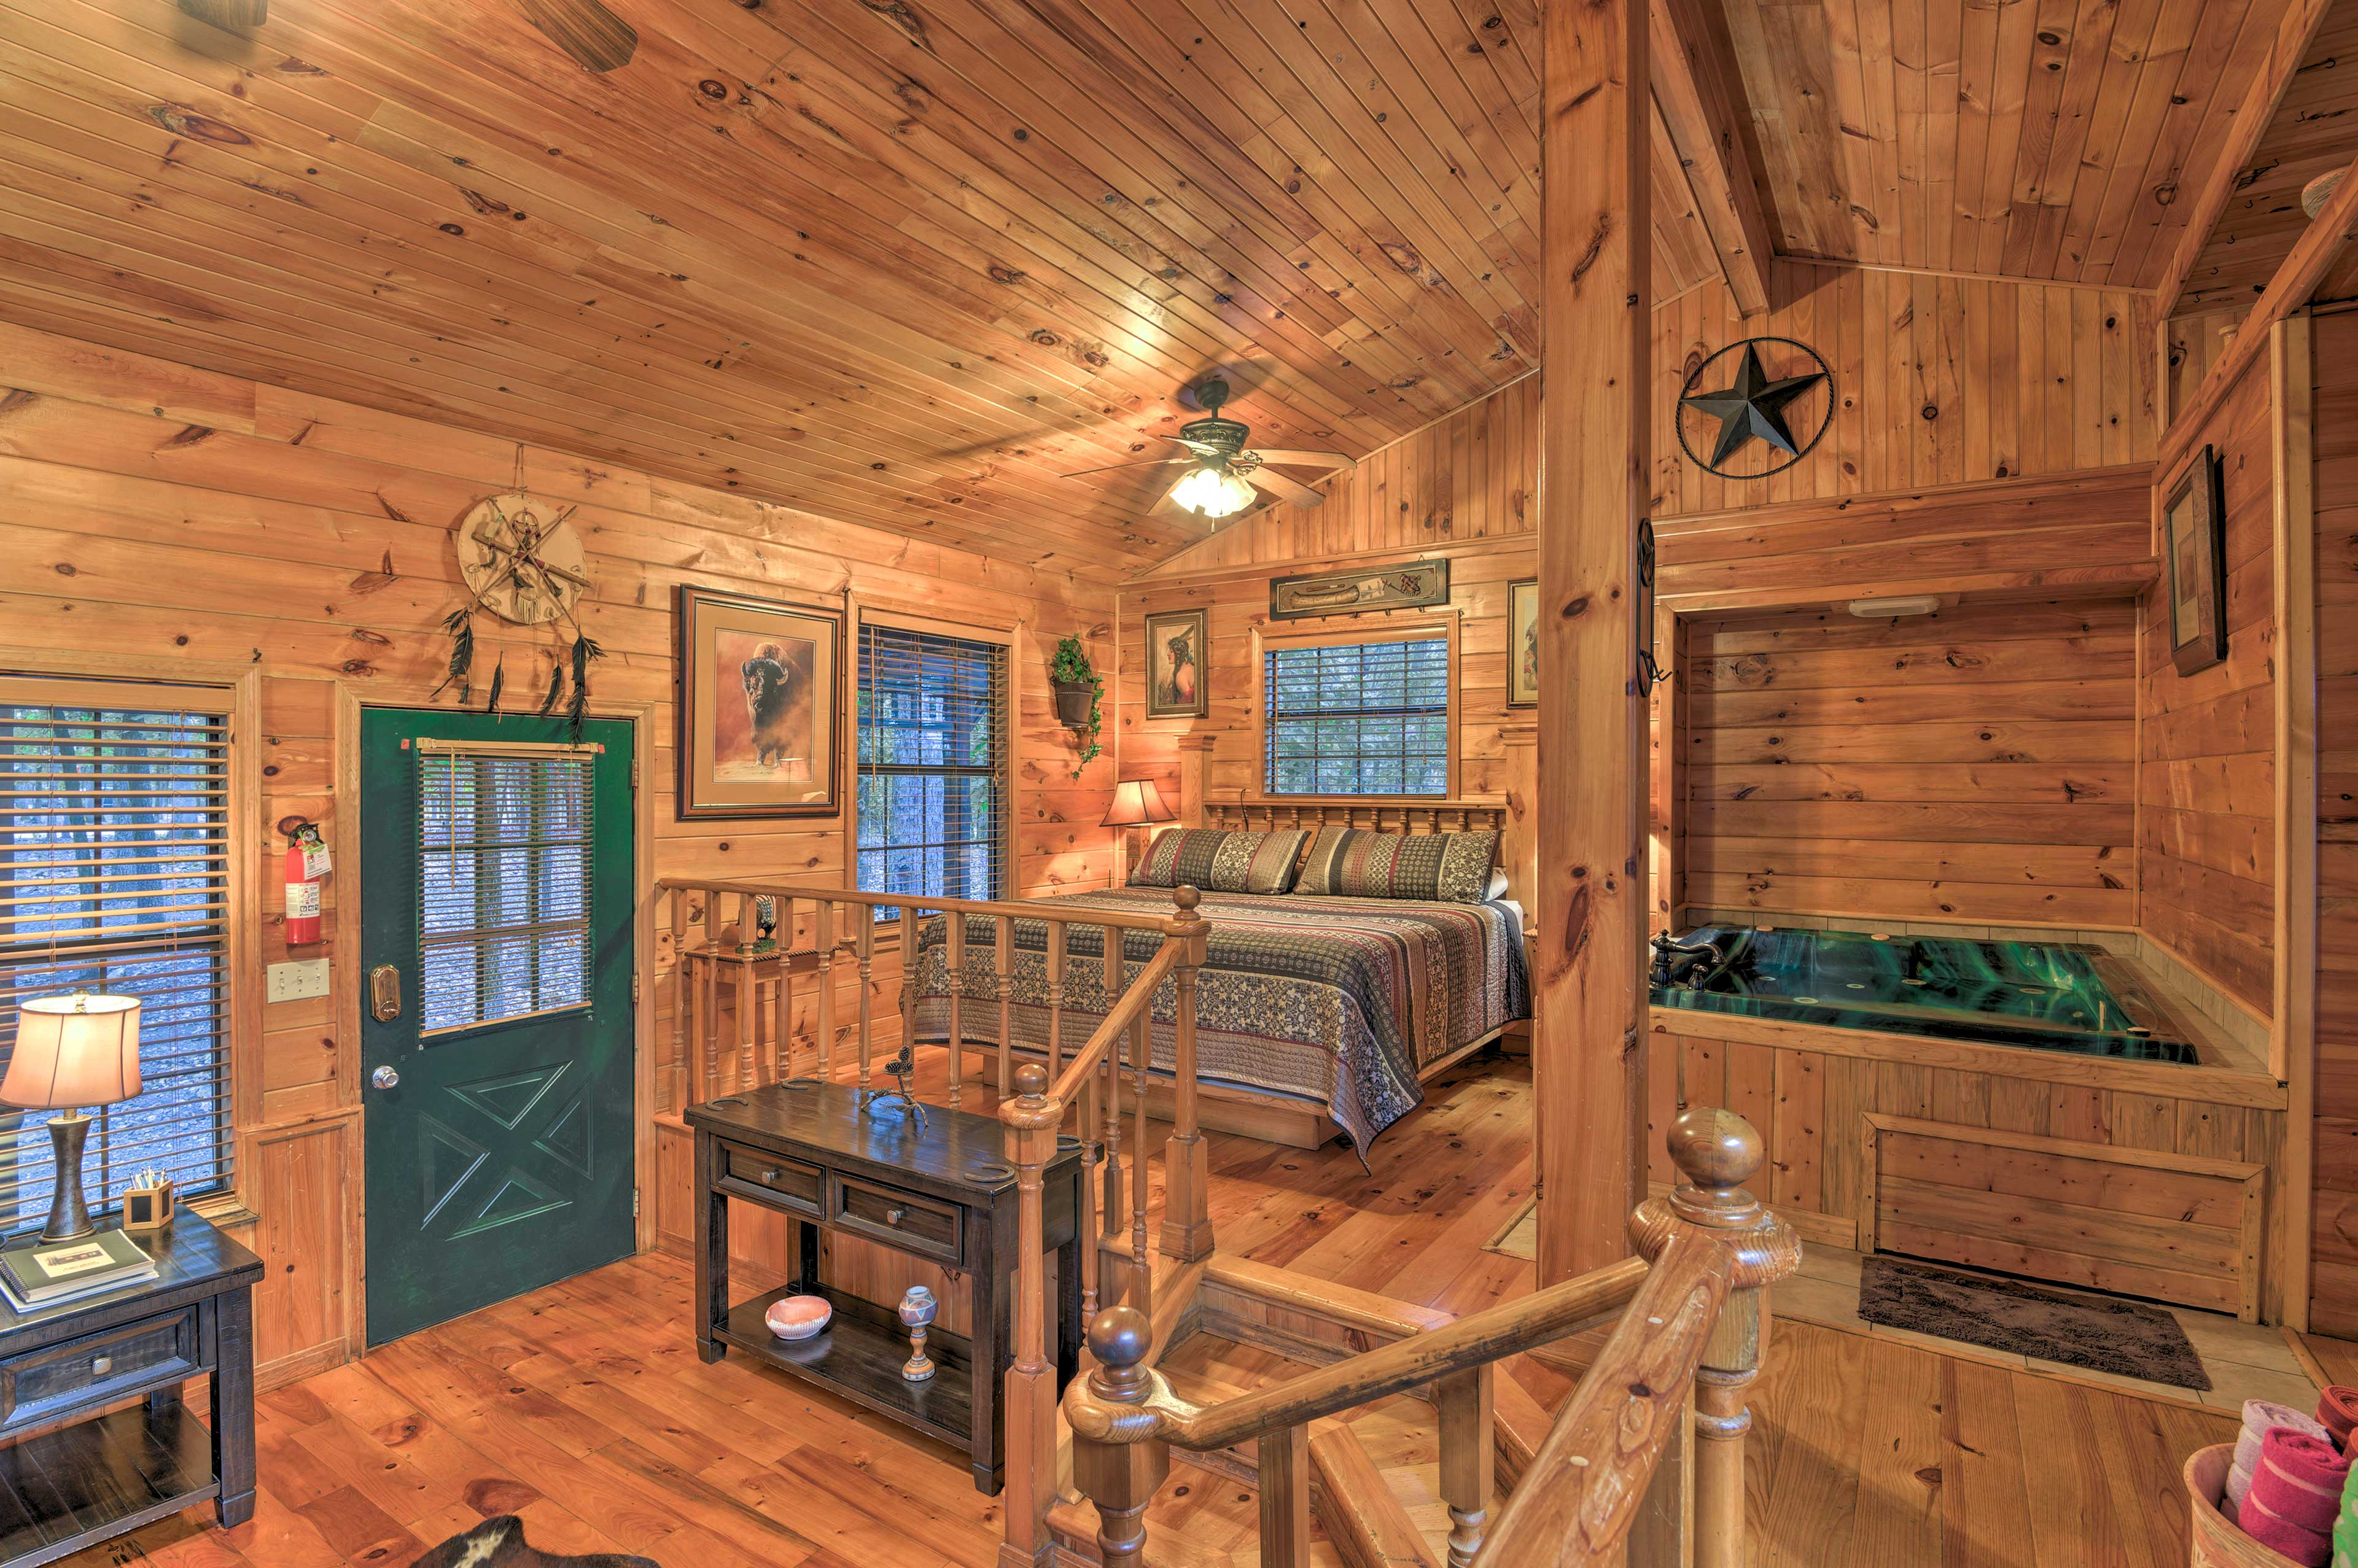 High ceilings soar over this spacious cabin.